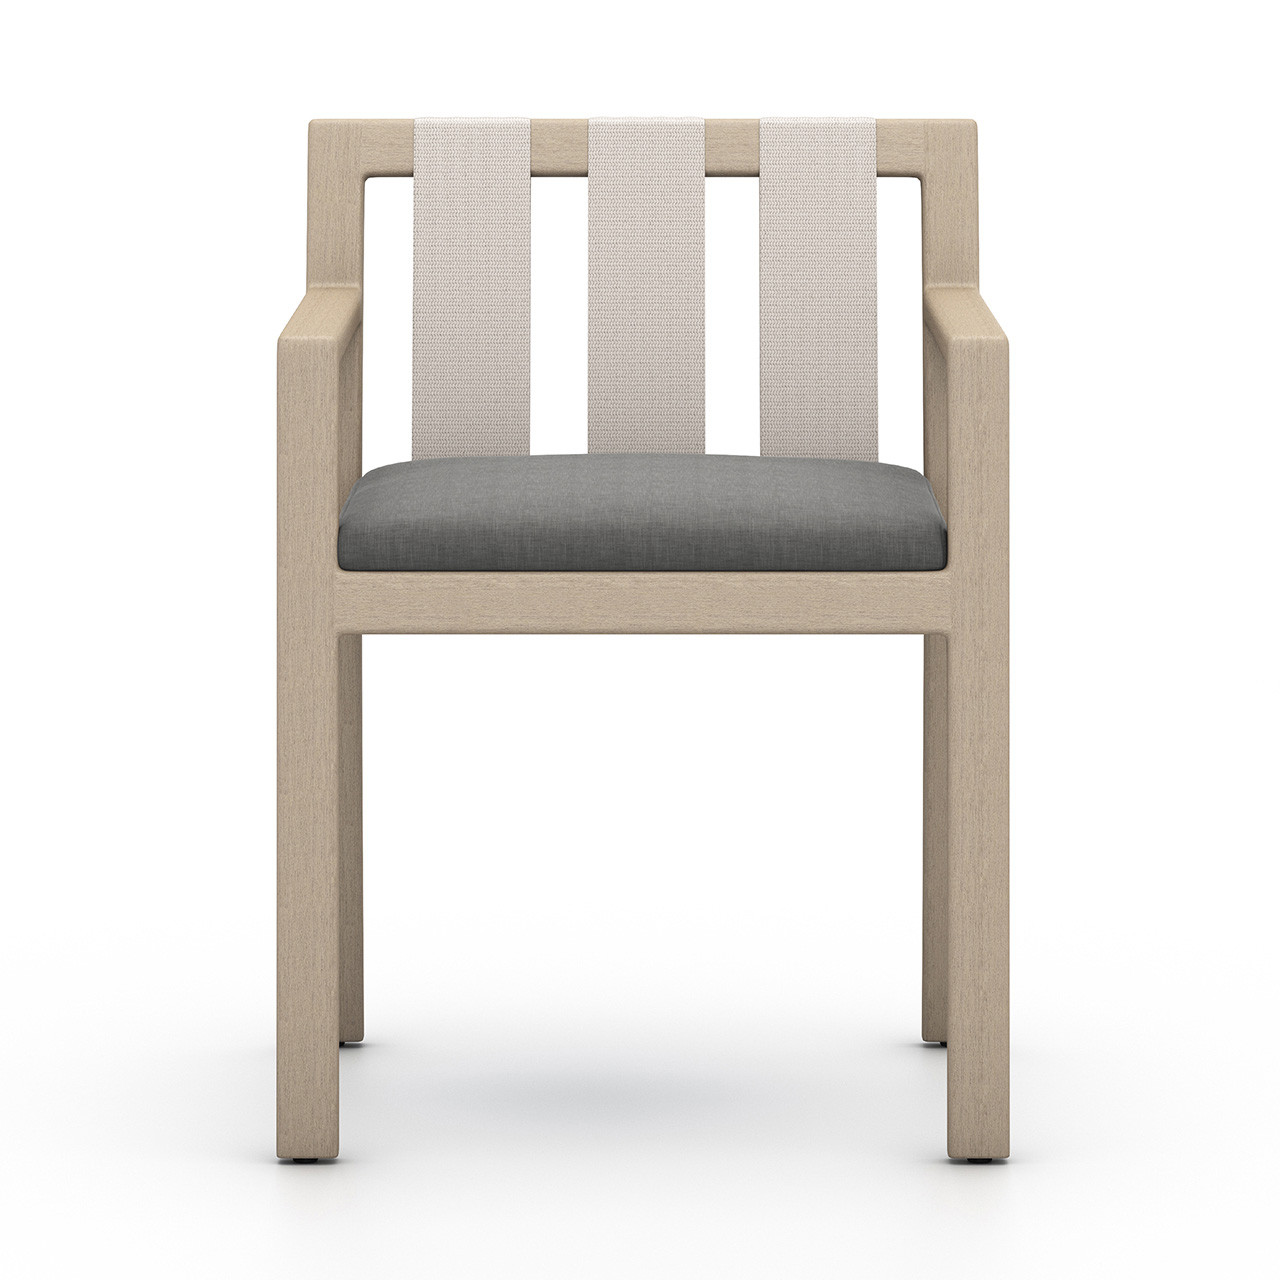 Oceanside Outdoor Dining Armchair, Washed Brown